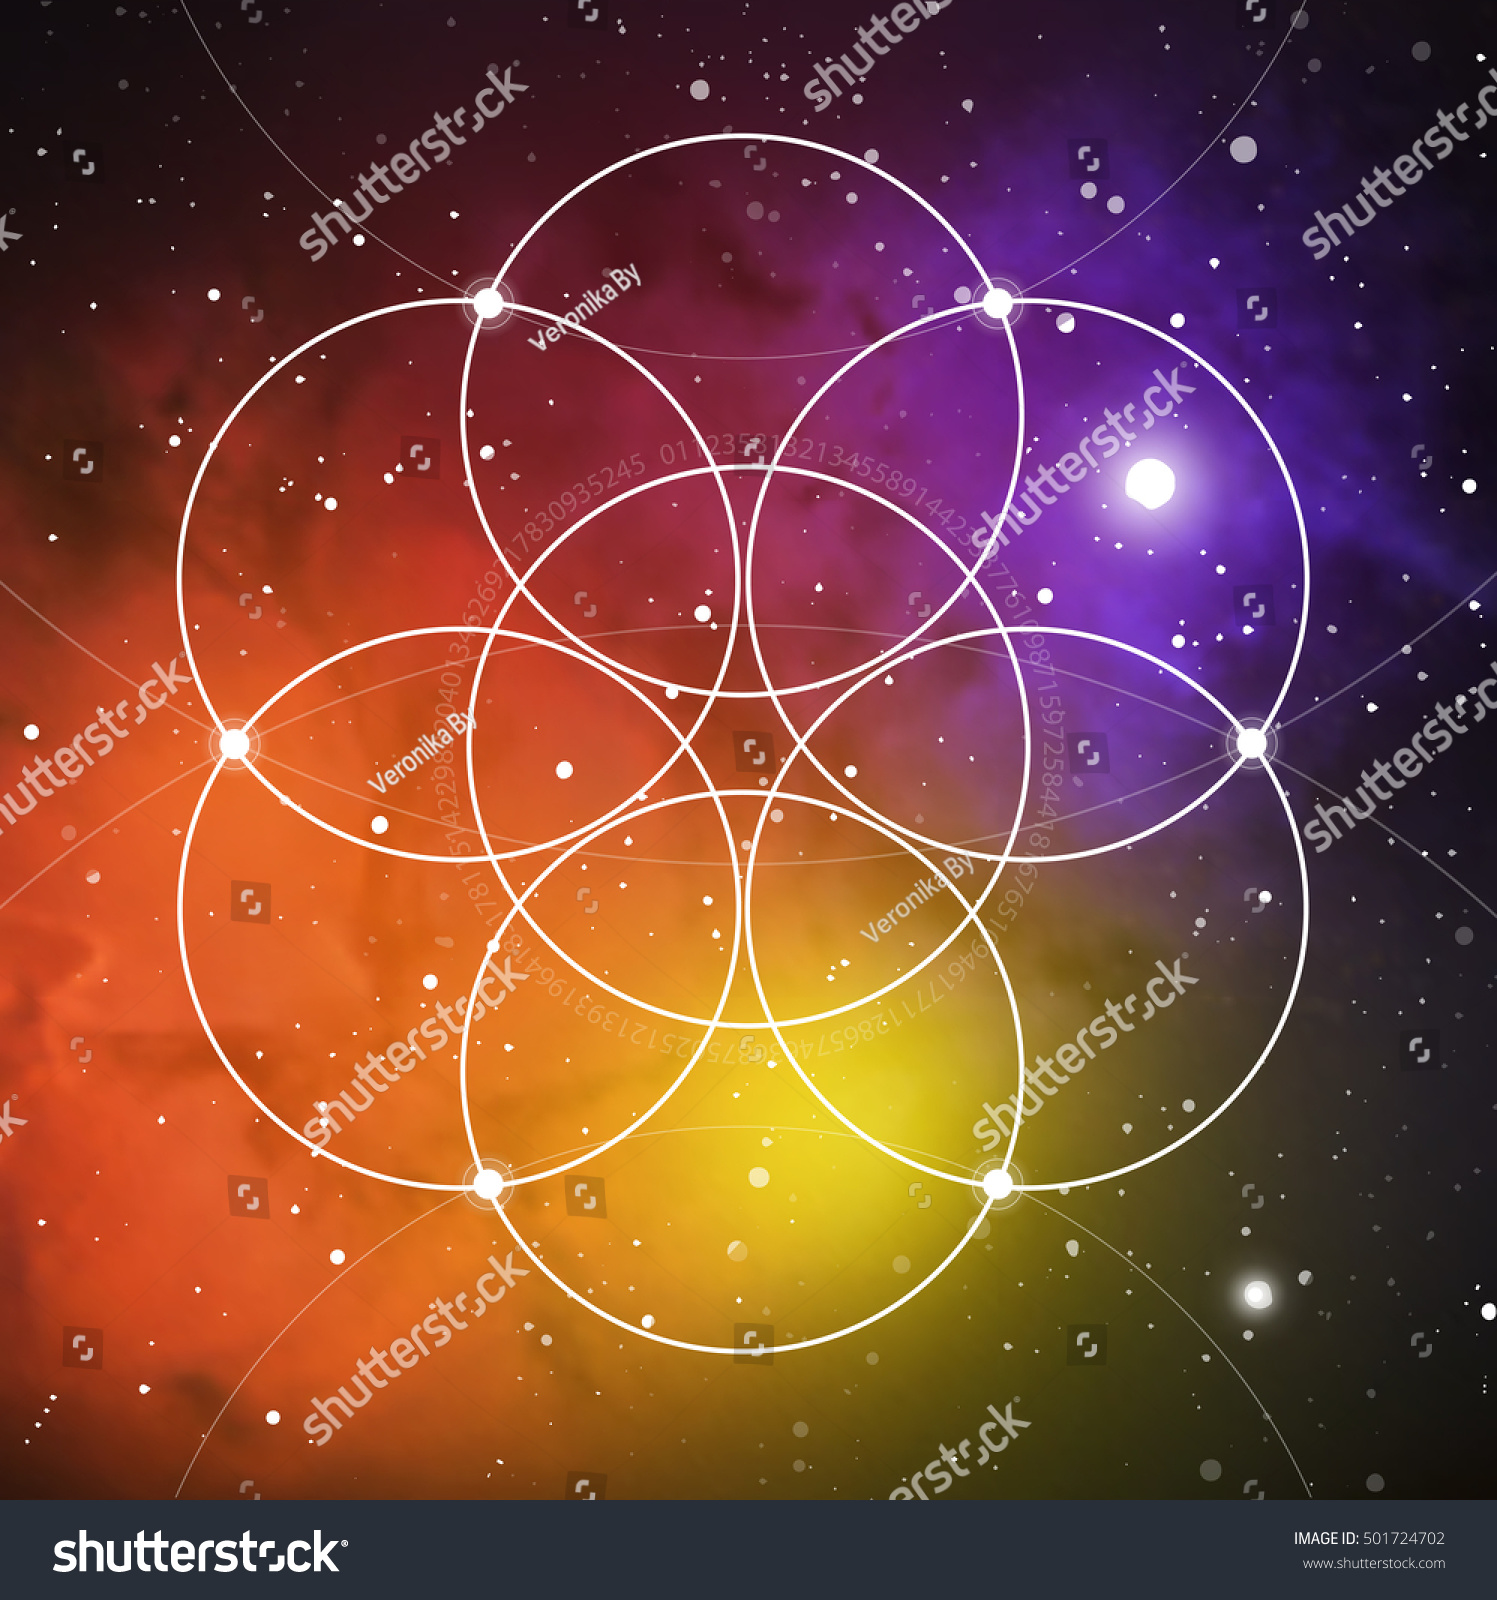 Flower Of Life The Interlocking Circles Ancient Symbol On Outer